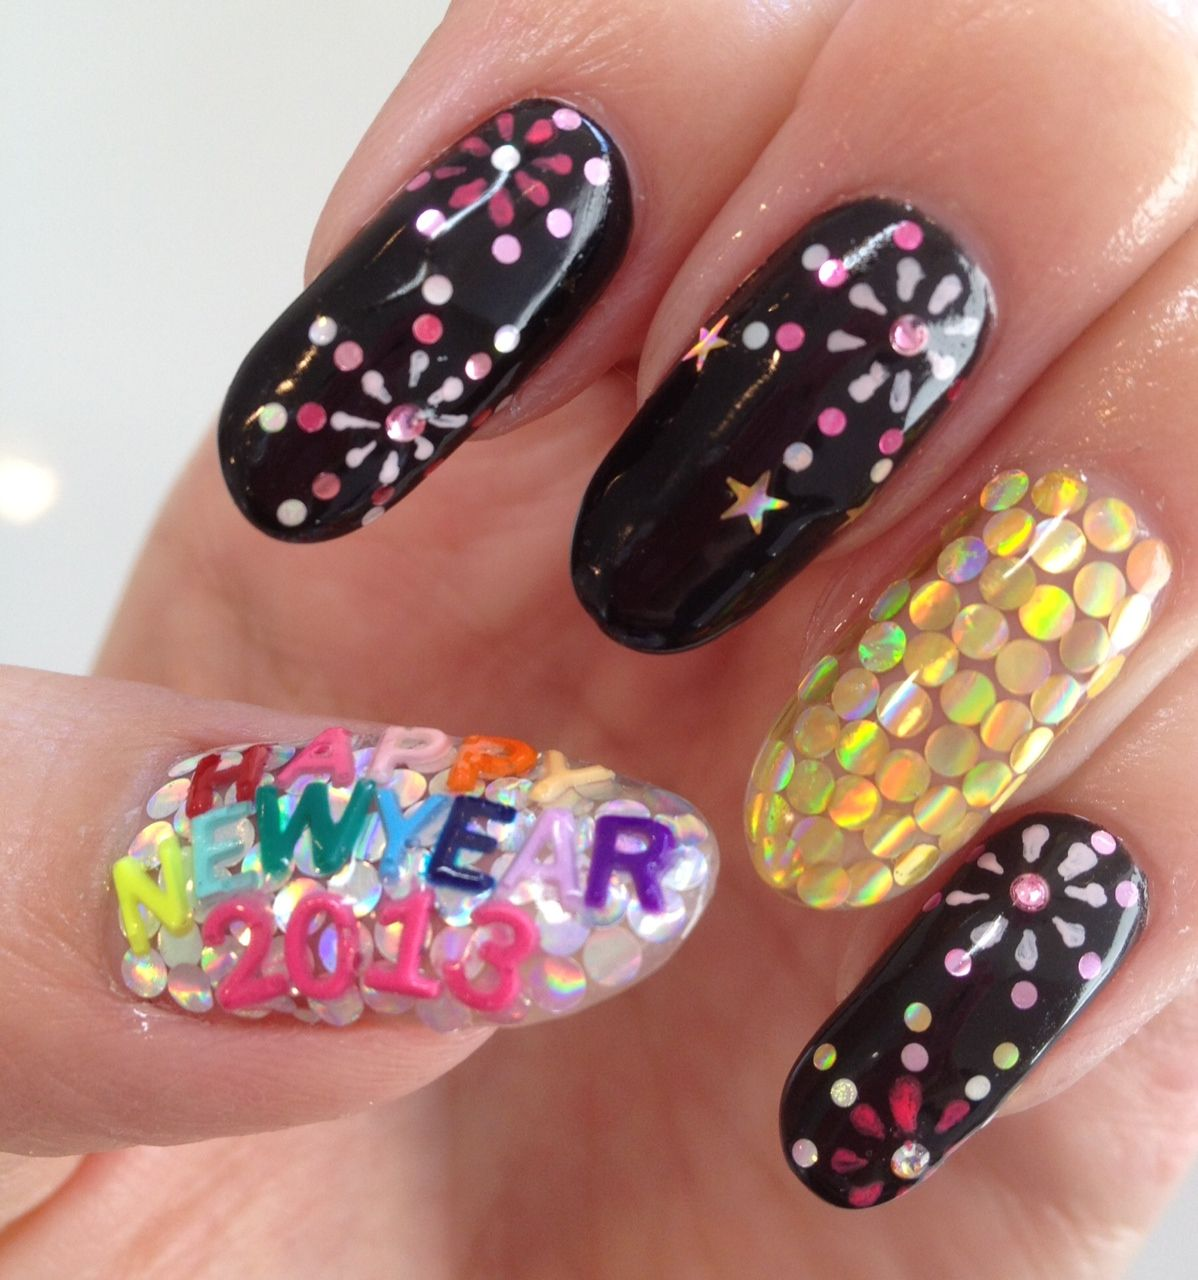 firewoks nail for new year 2013♥ New year's nails, New